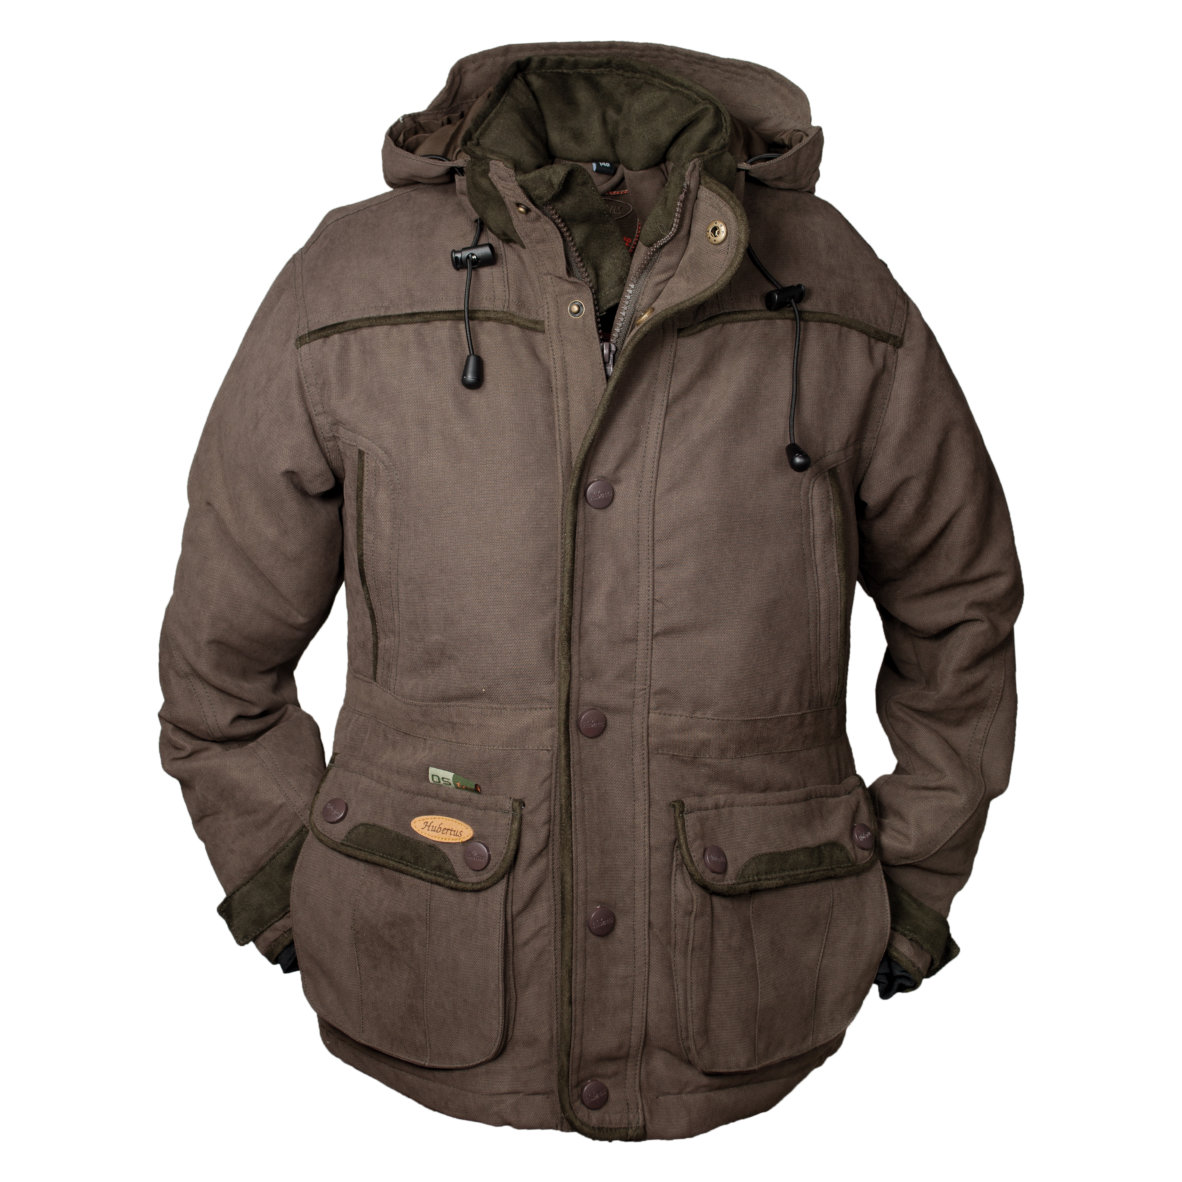 Kinder Thermo Outdoor Jacke OS 60